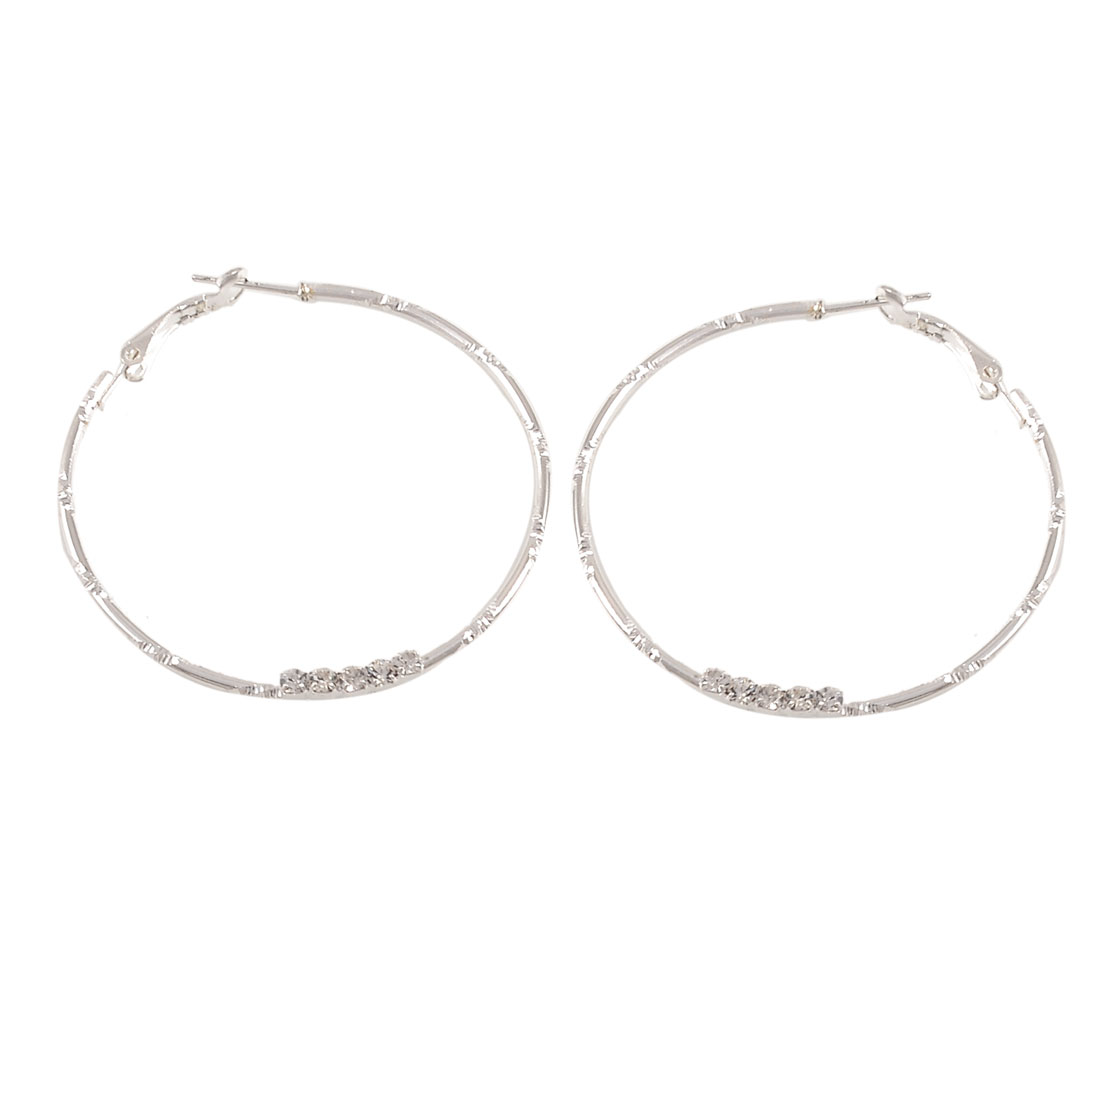 Silver Tone Rhinestone Decor Spring Hoop Earrings for Women